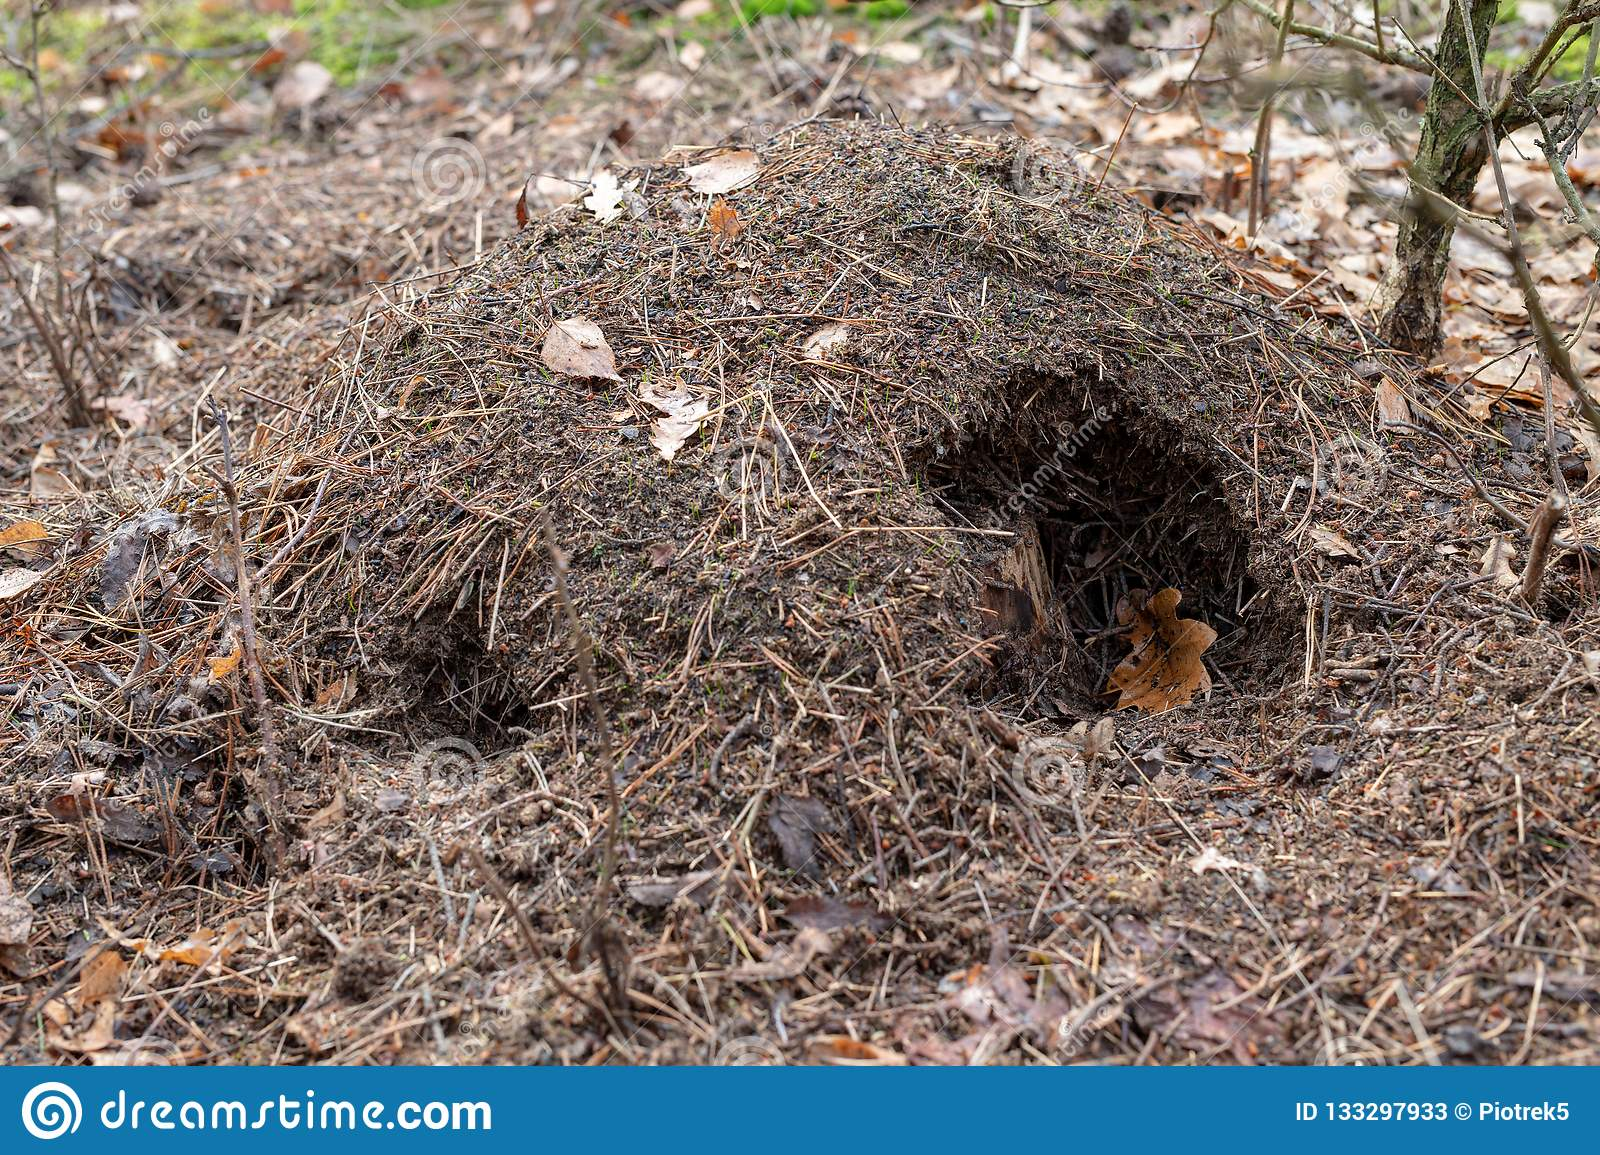 A damaged anthill by a wild boar in the forest. Abandoned place